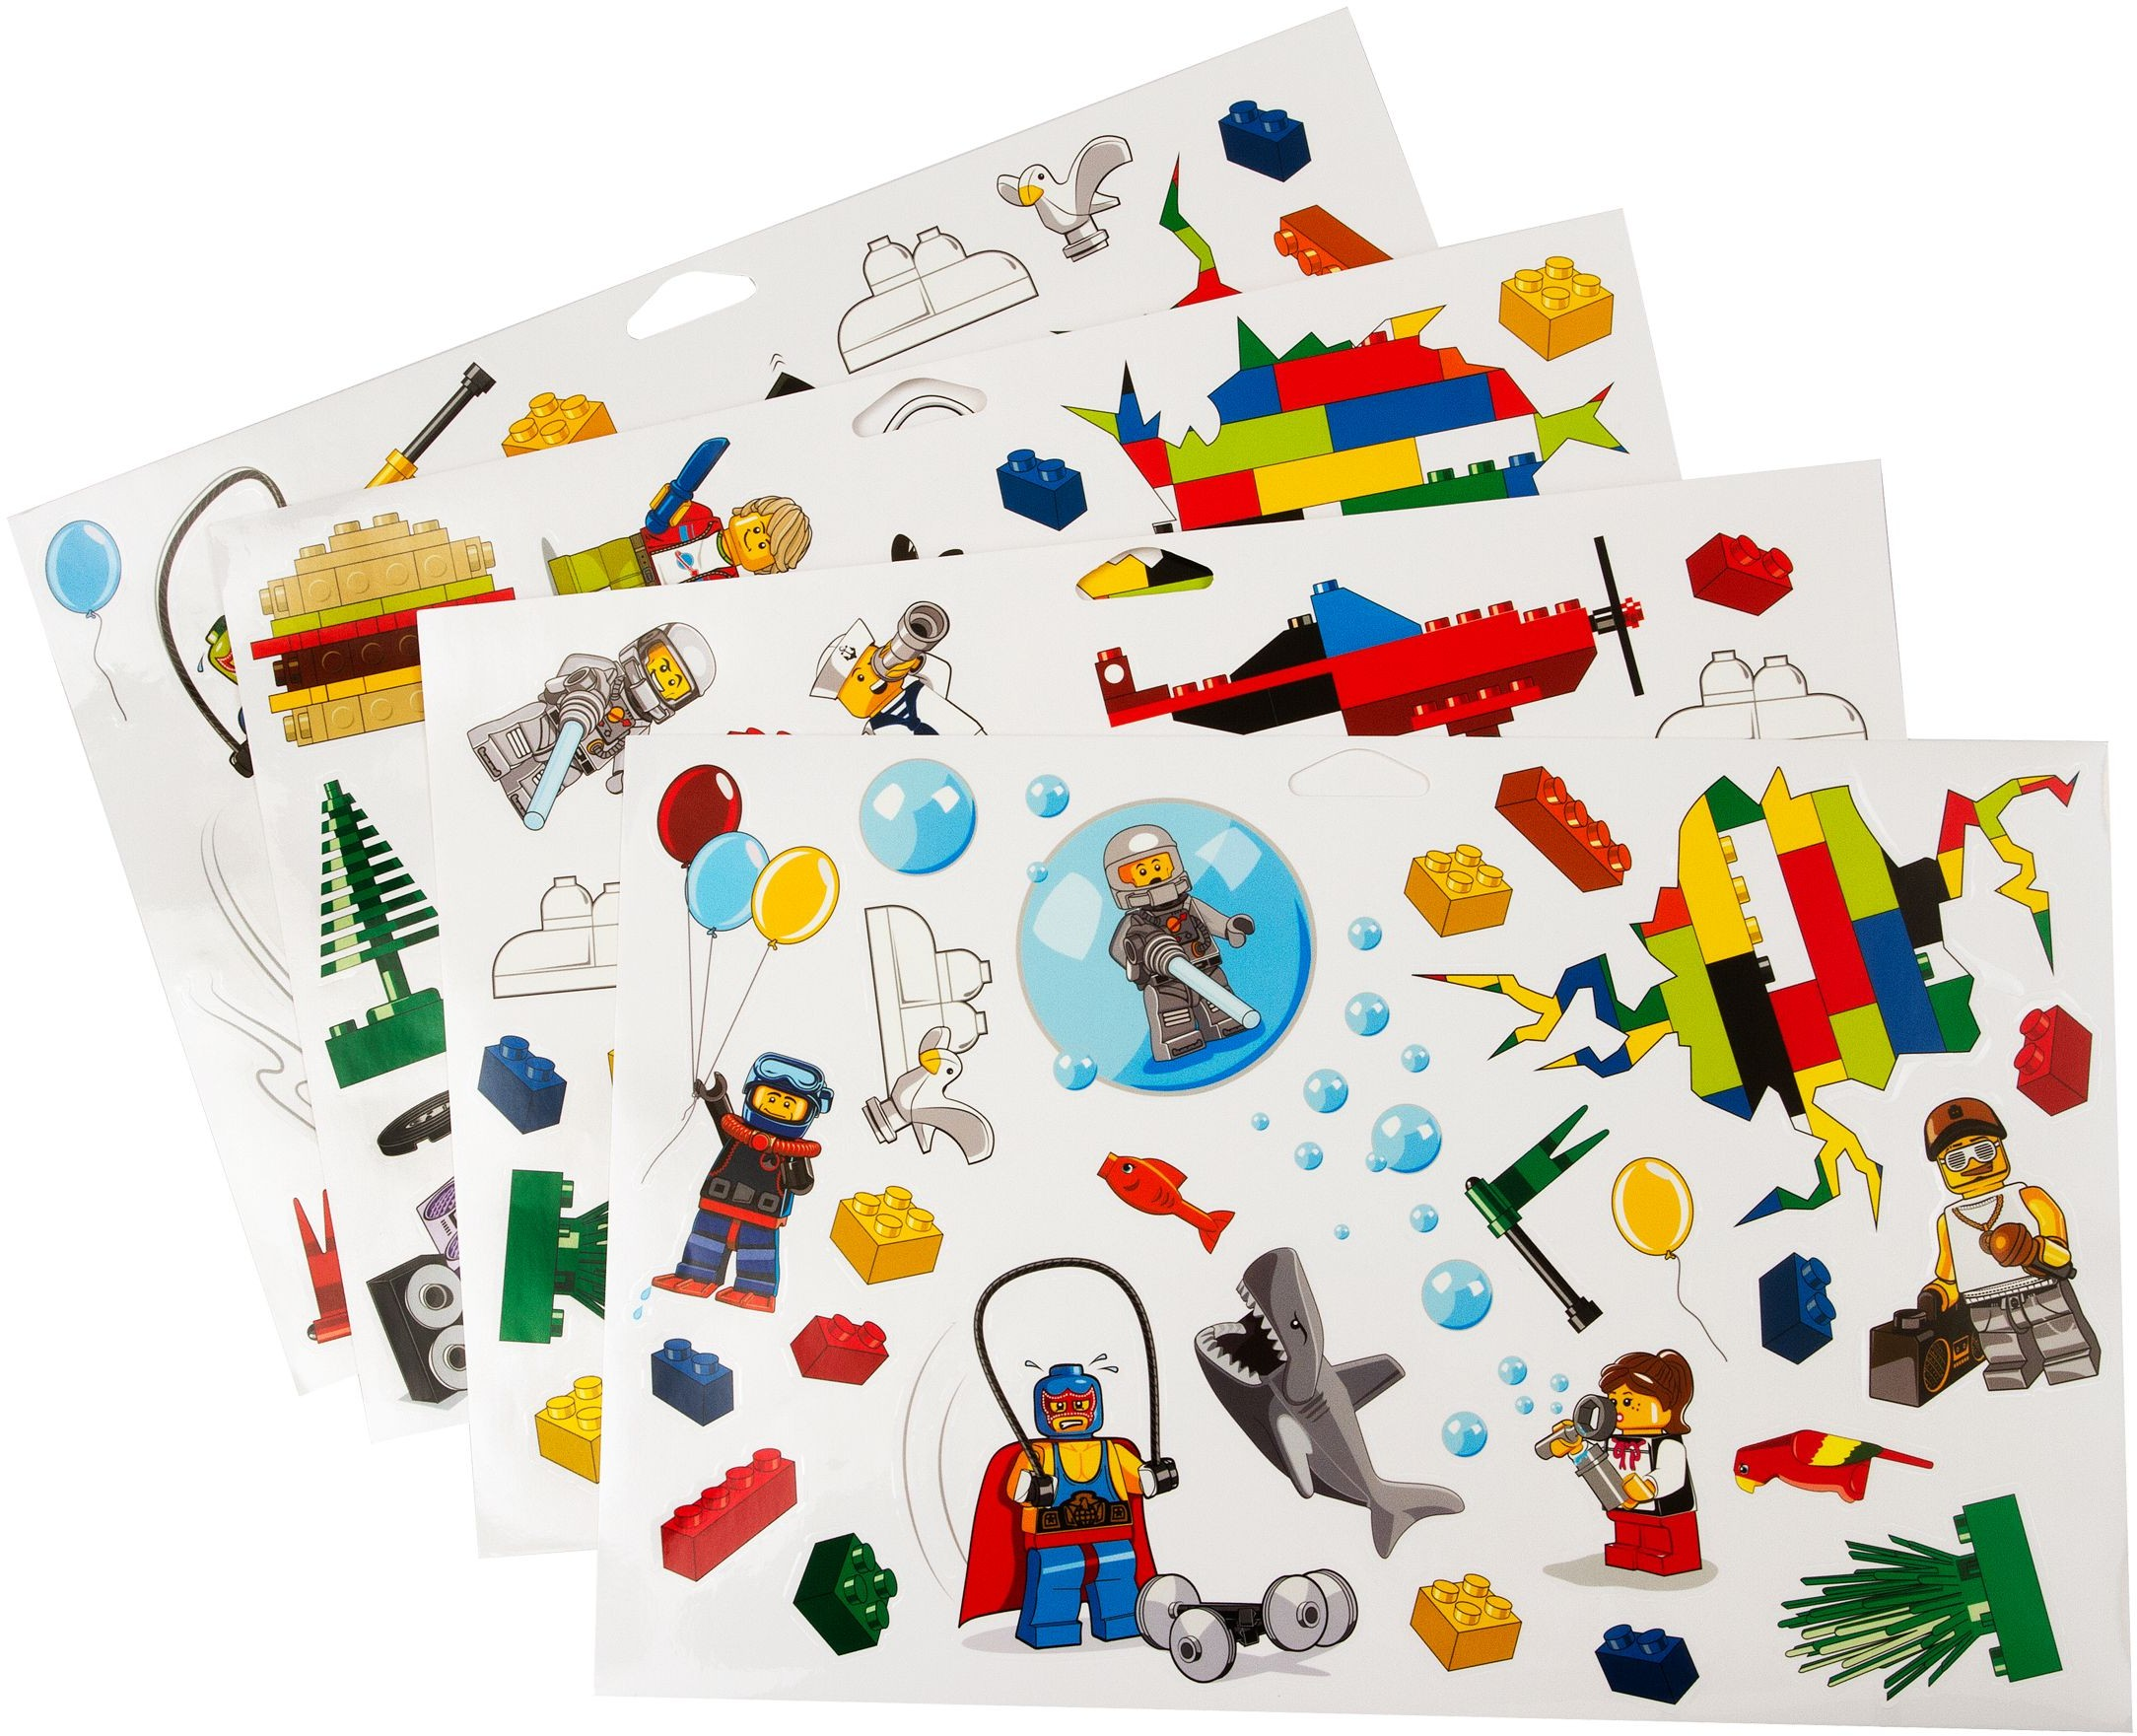 Lego Ninjago Wall Stickers Gear Stickers Brickset Lego Set Guide And Database